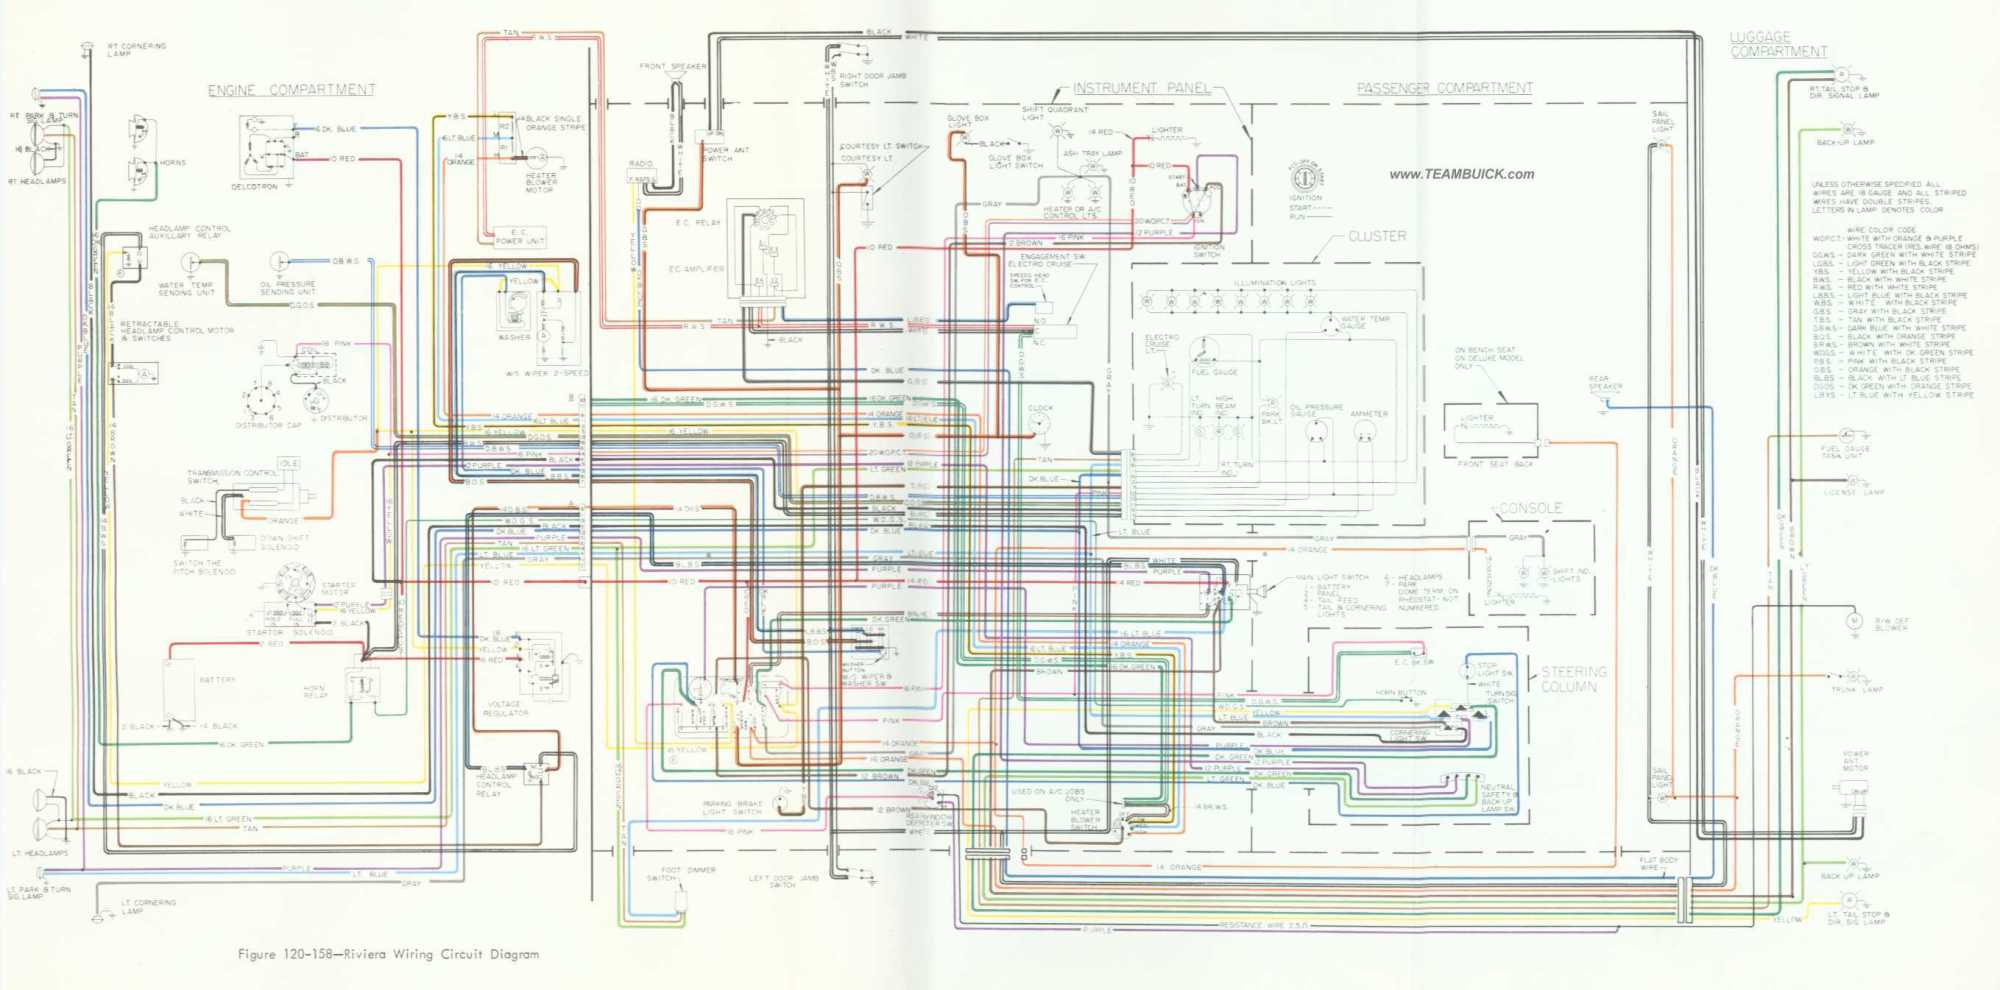 hight resolution of 1966 buick riviera wiring diagram rh teambuick com 2002 buick lesabre engine diagram signal stat wiring